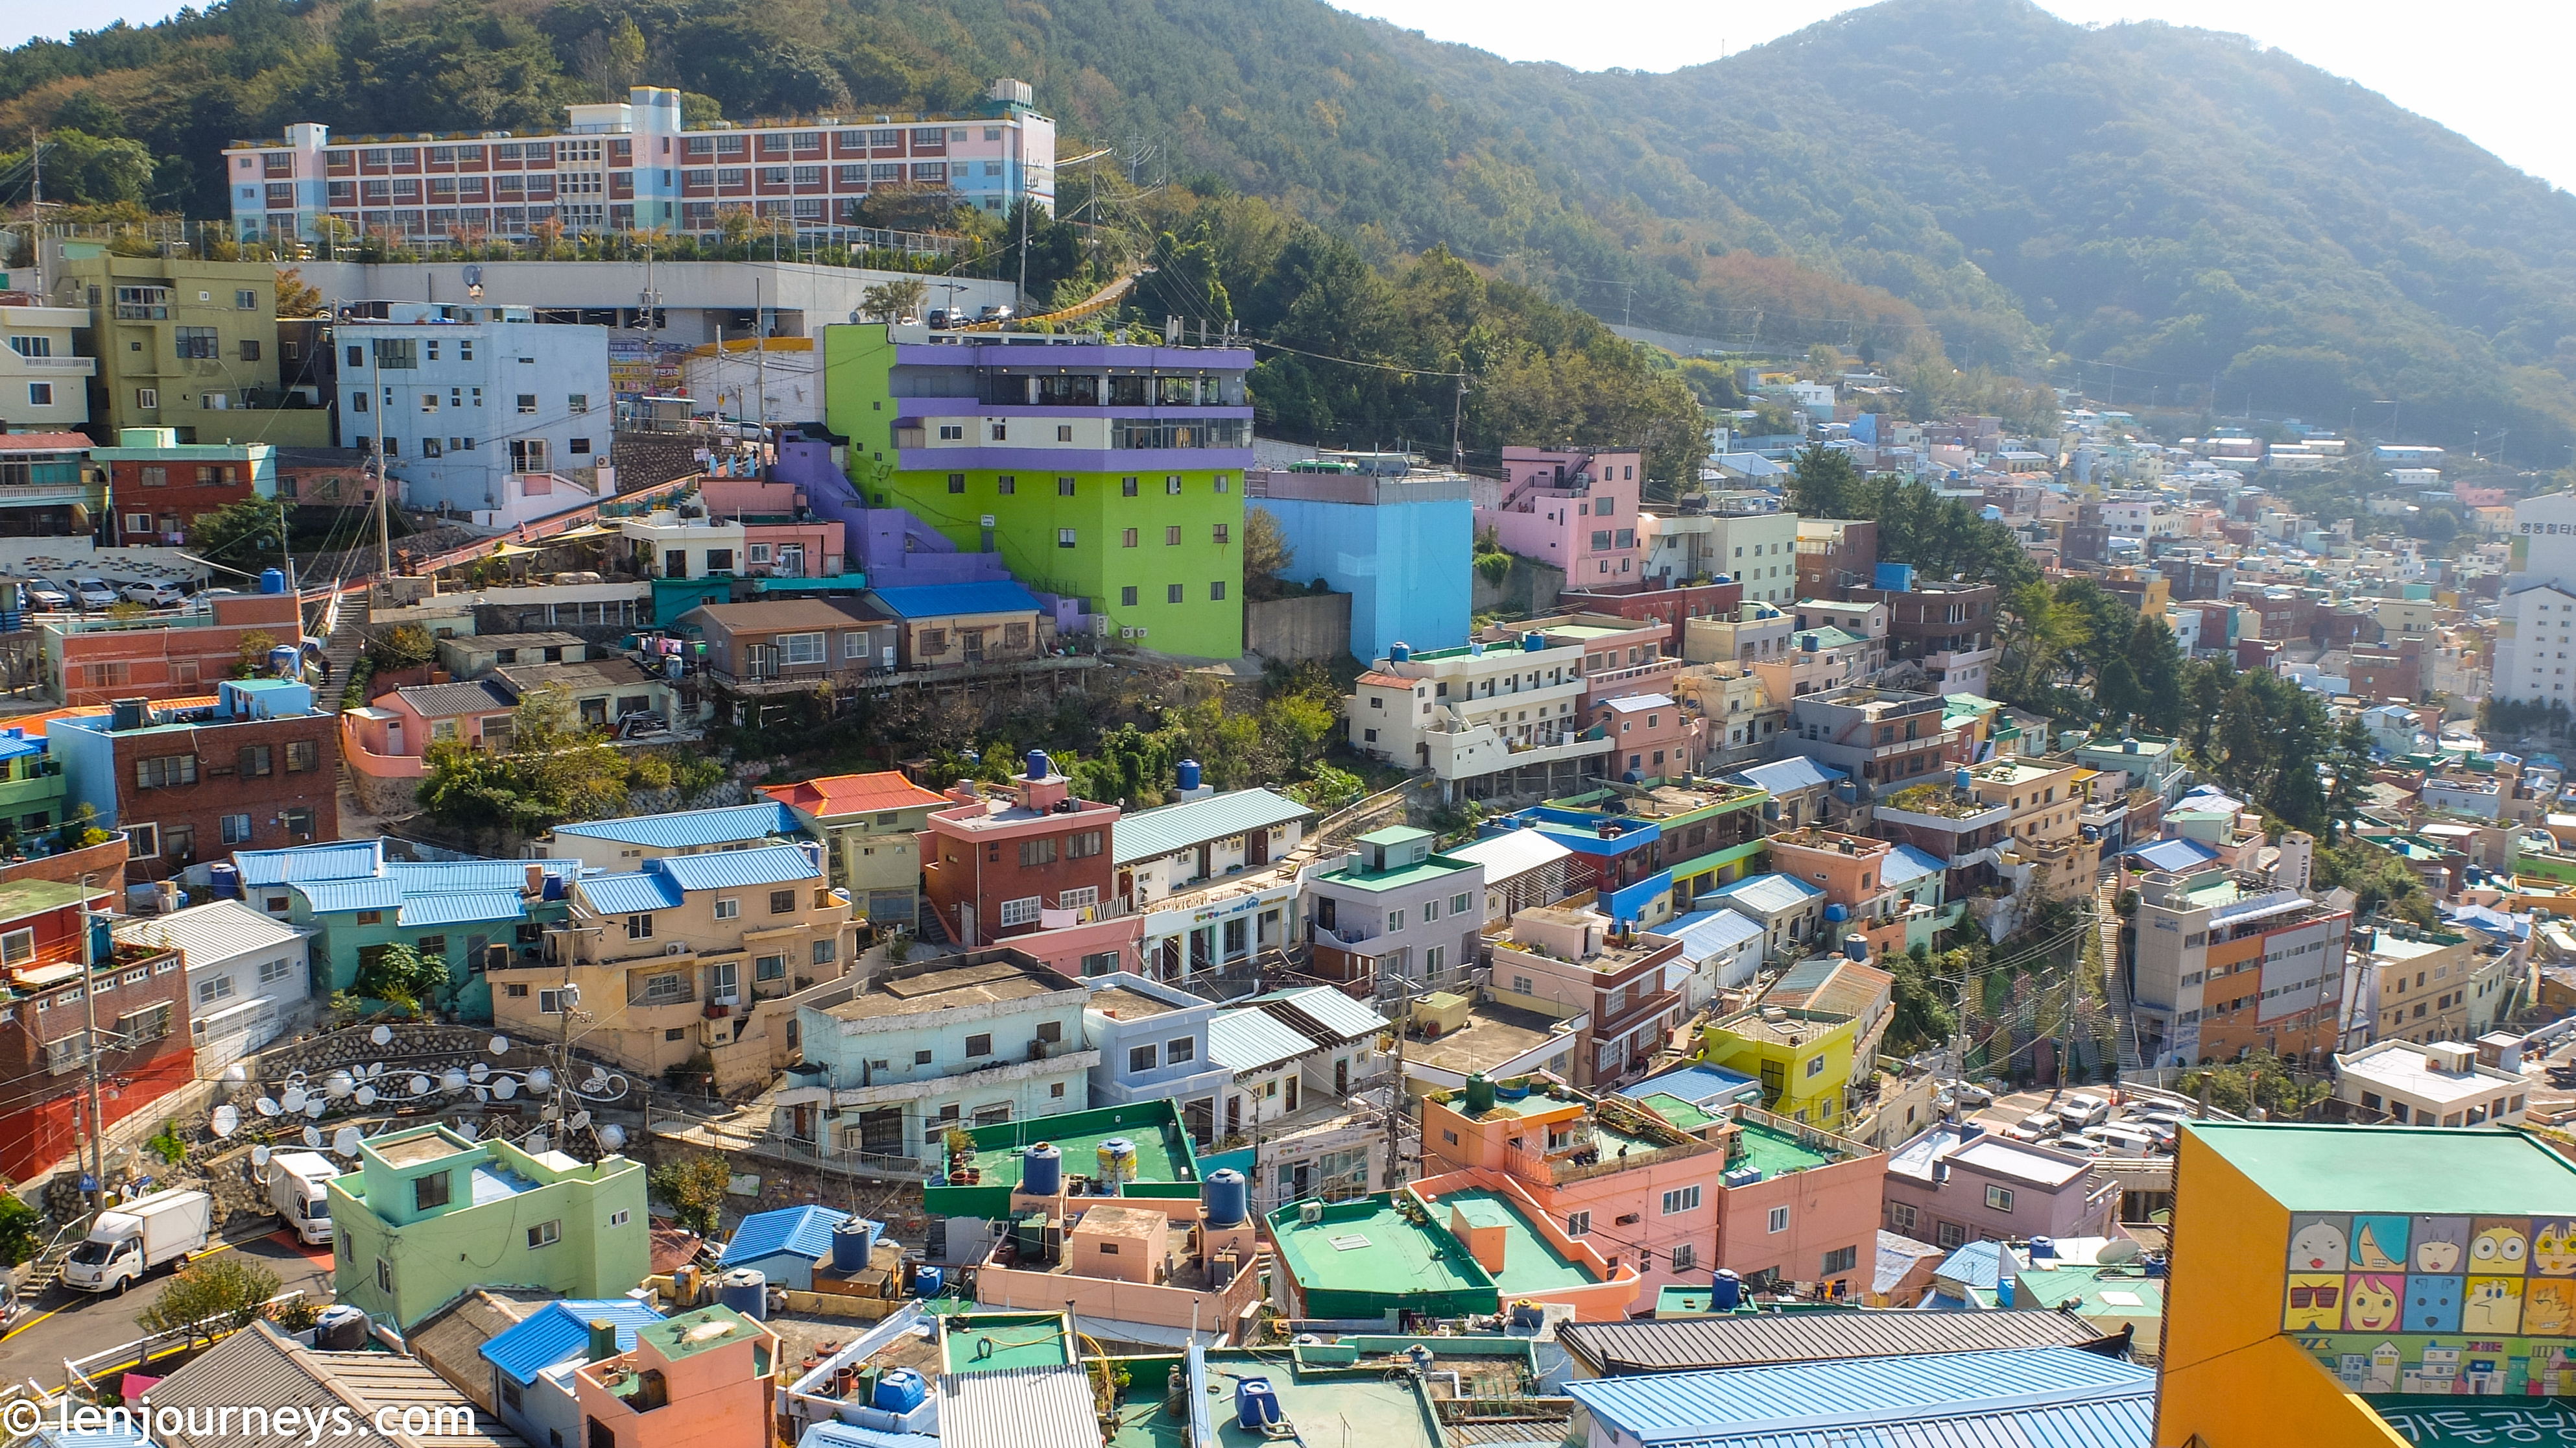 The architectural layout of Gamcheon village